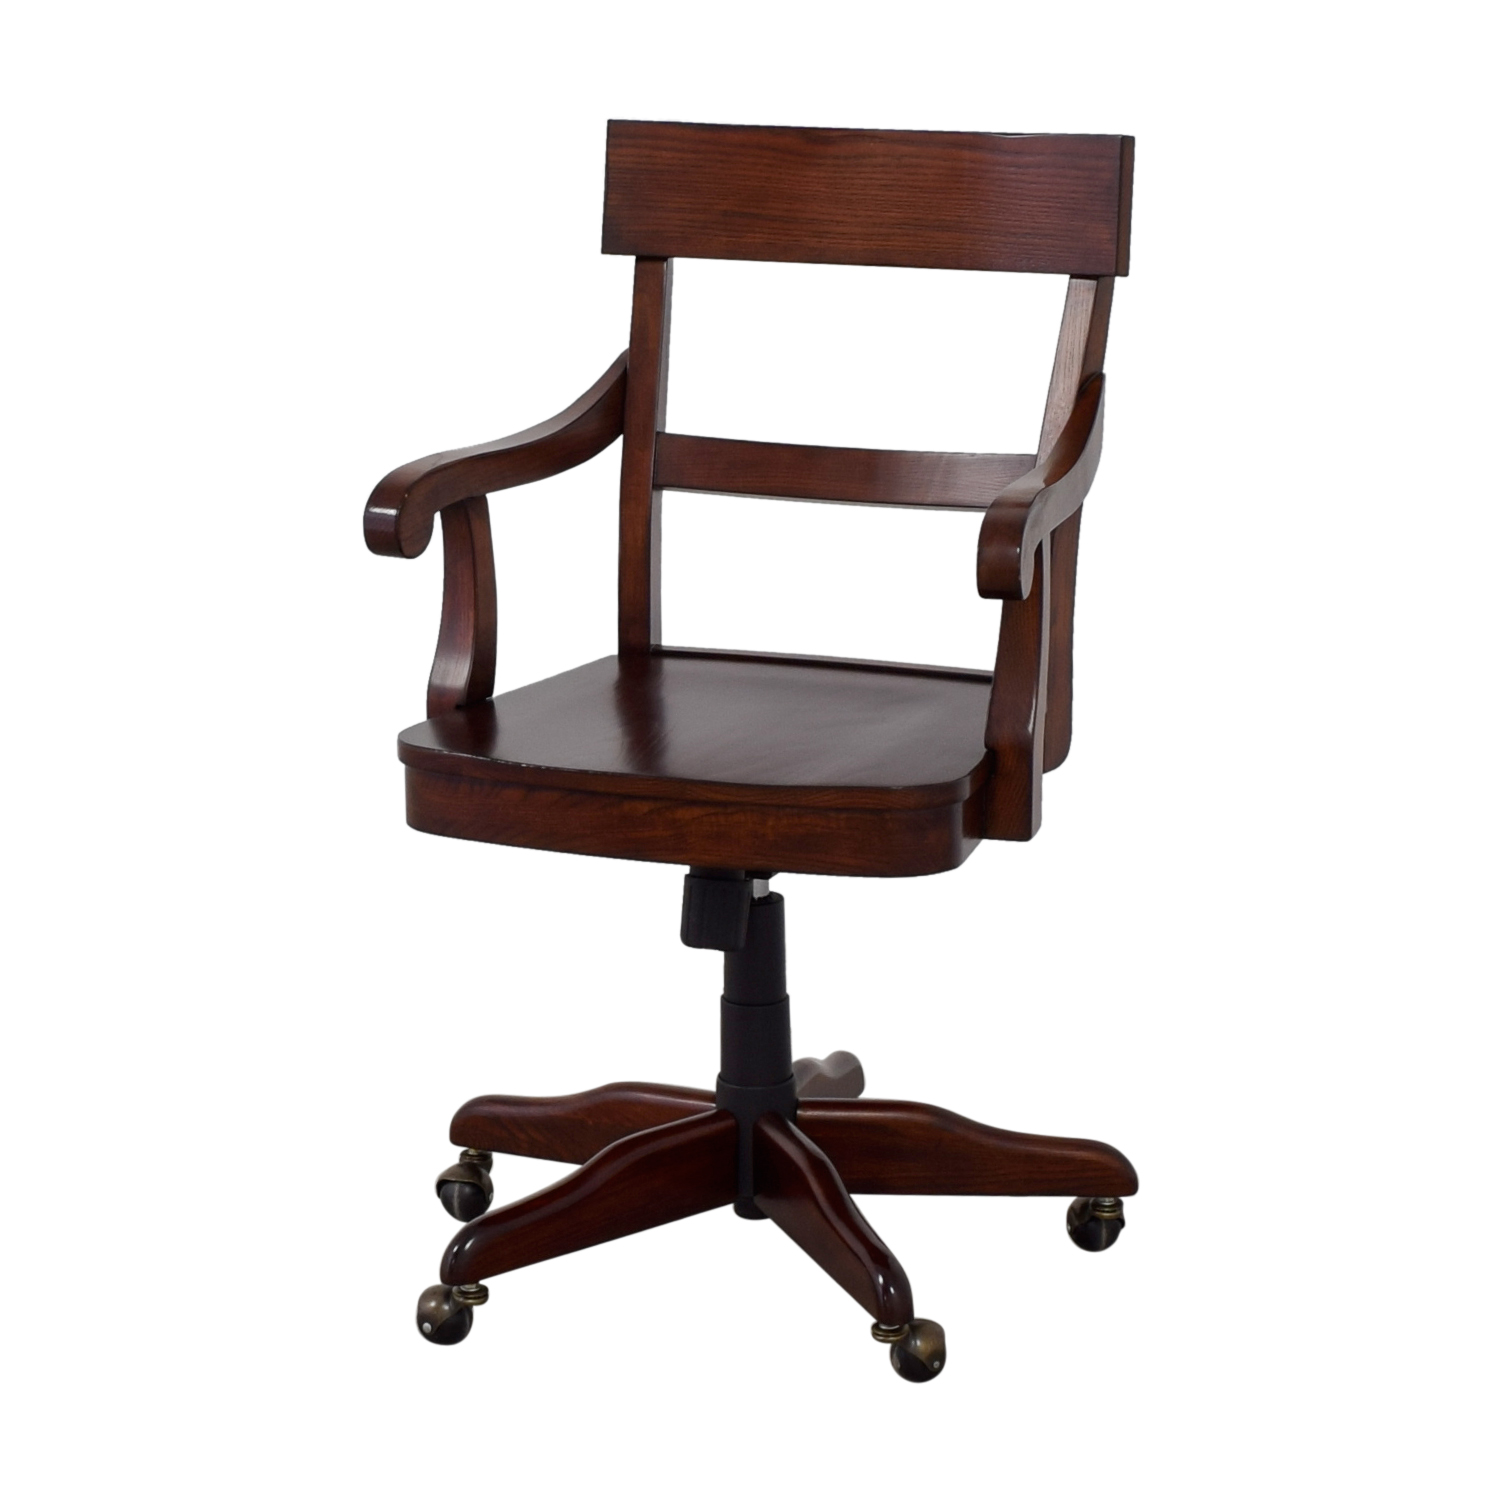 swivel chair pottery barn cover hire gretna 55 off wood desk